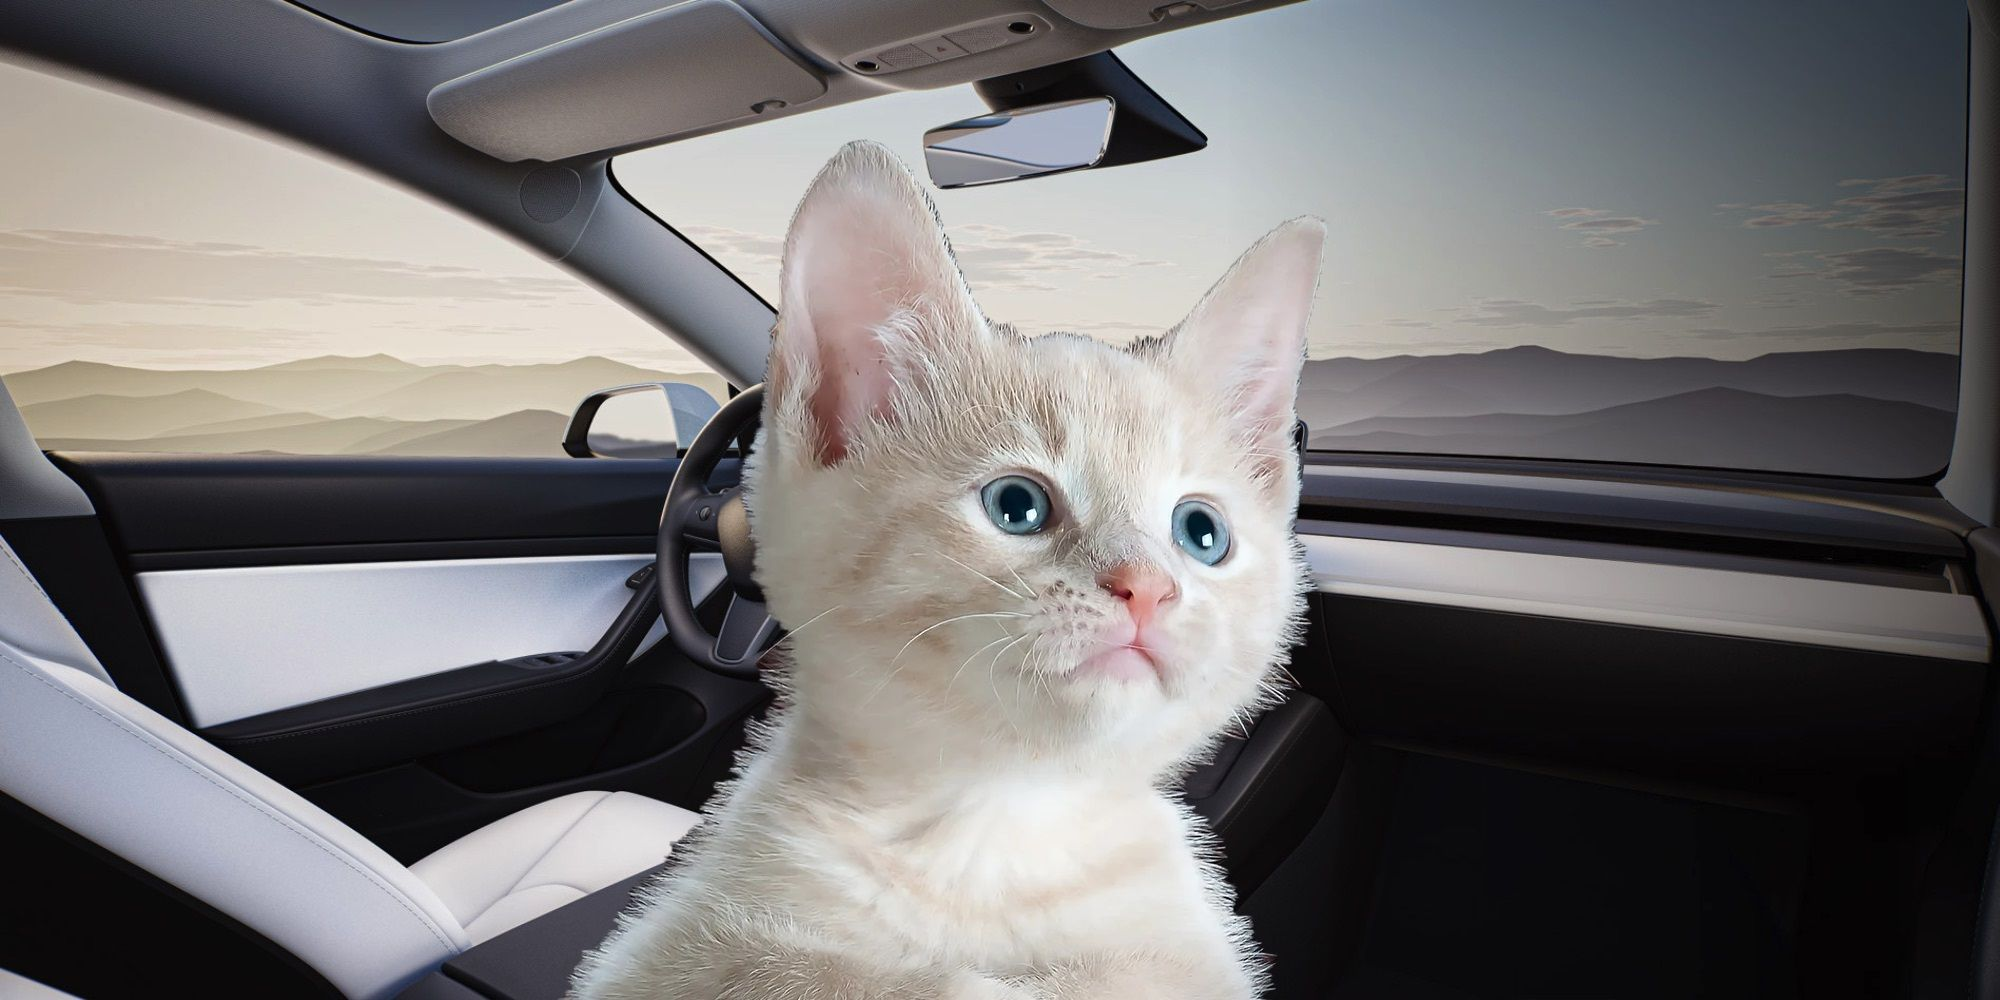 Why Elon Musk & Tesla Were Recently Blamed For Killing Cats